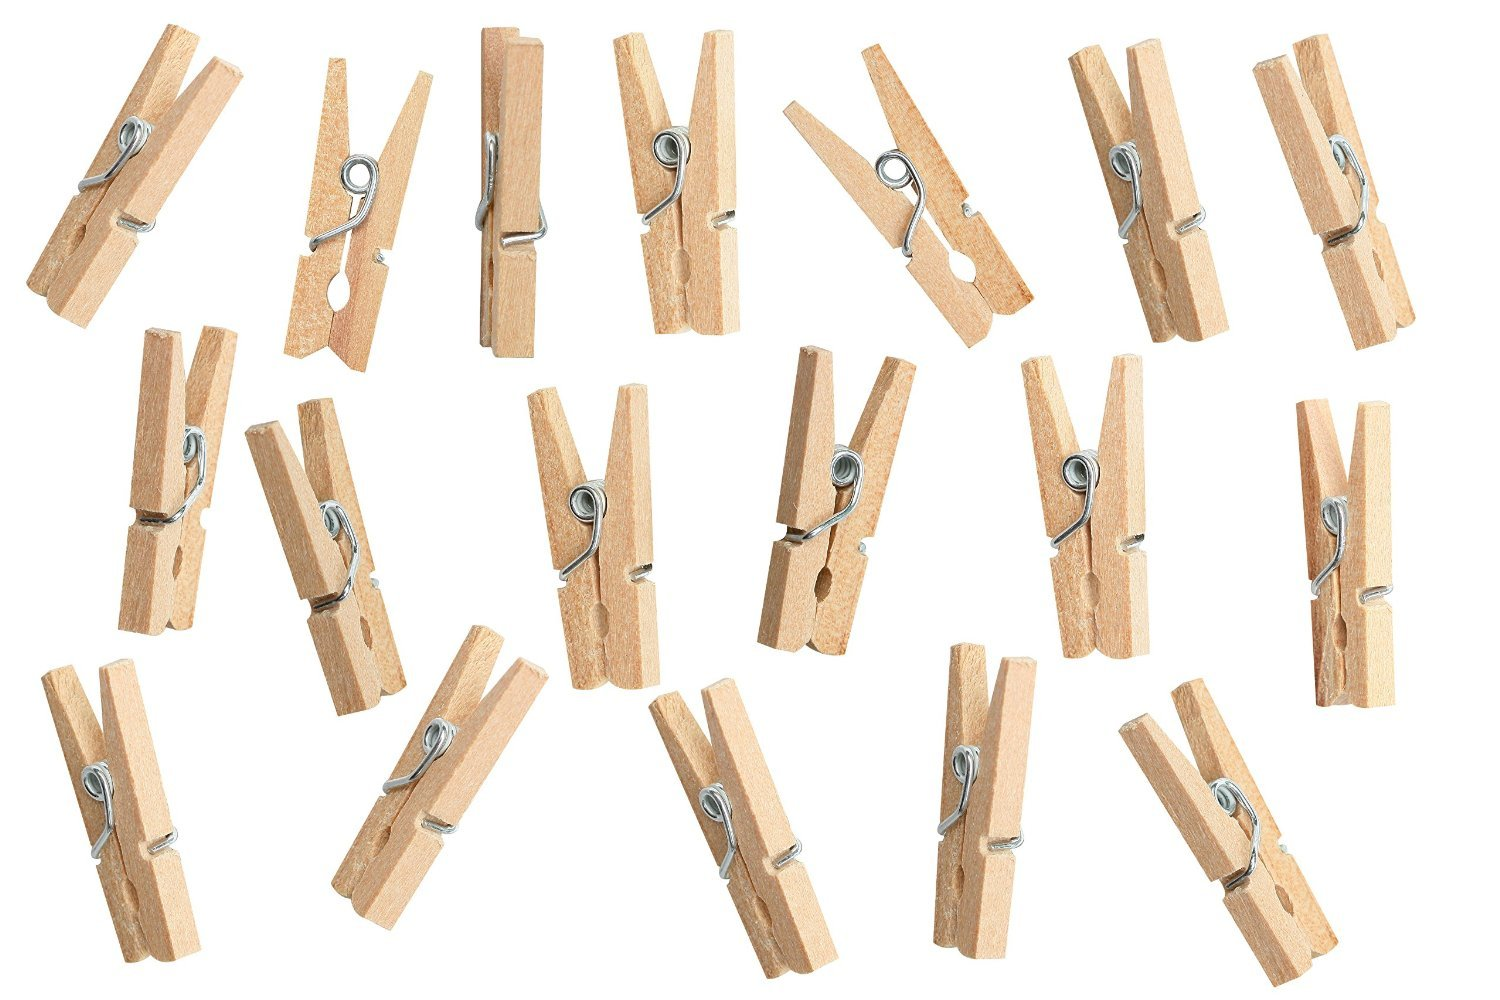 Greenco Laundry Clips - Wooden Clip - Wood Clothespins with Spring - 200 Pack